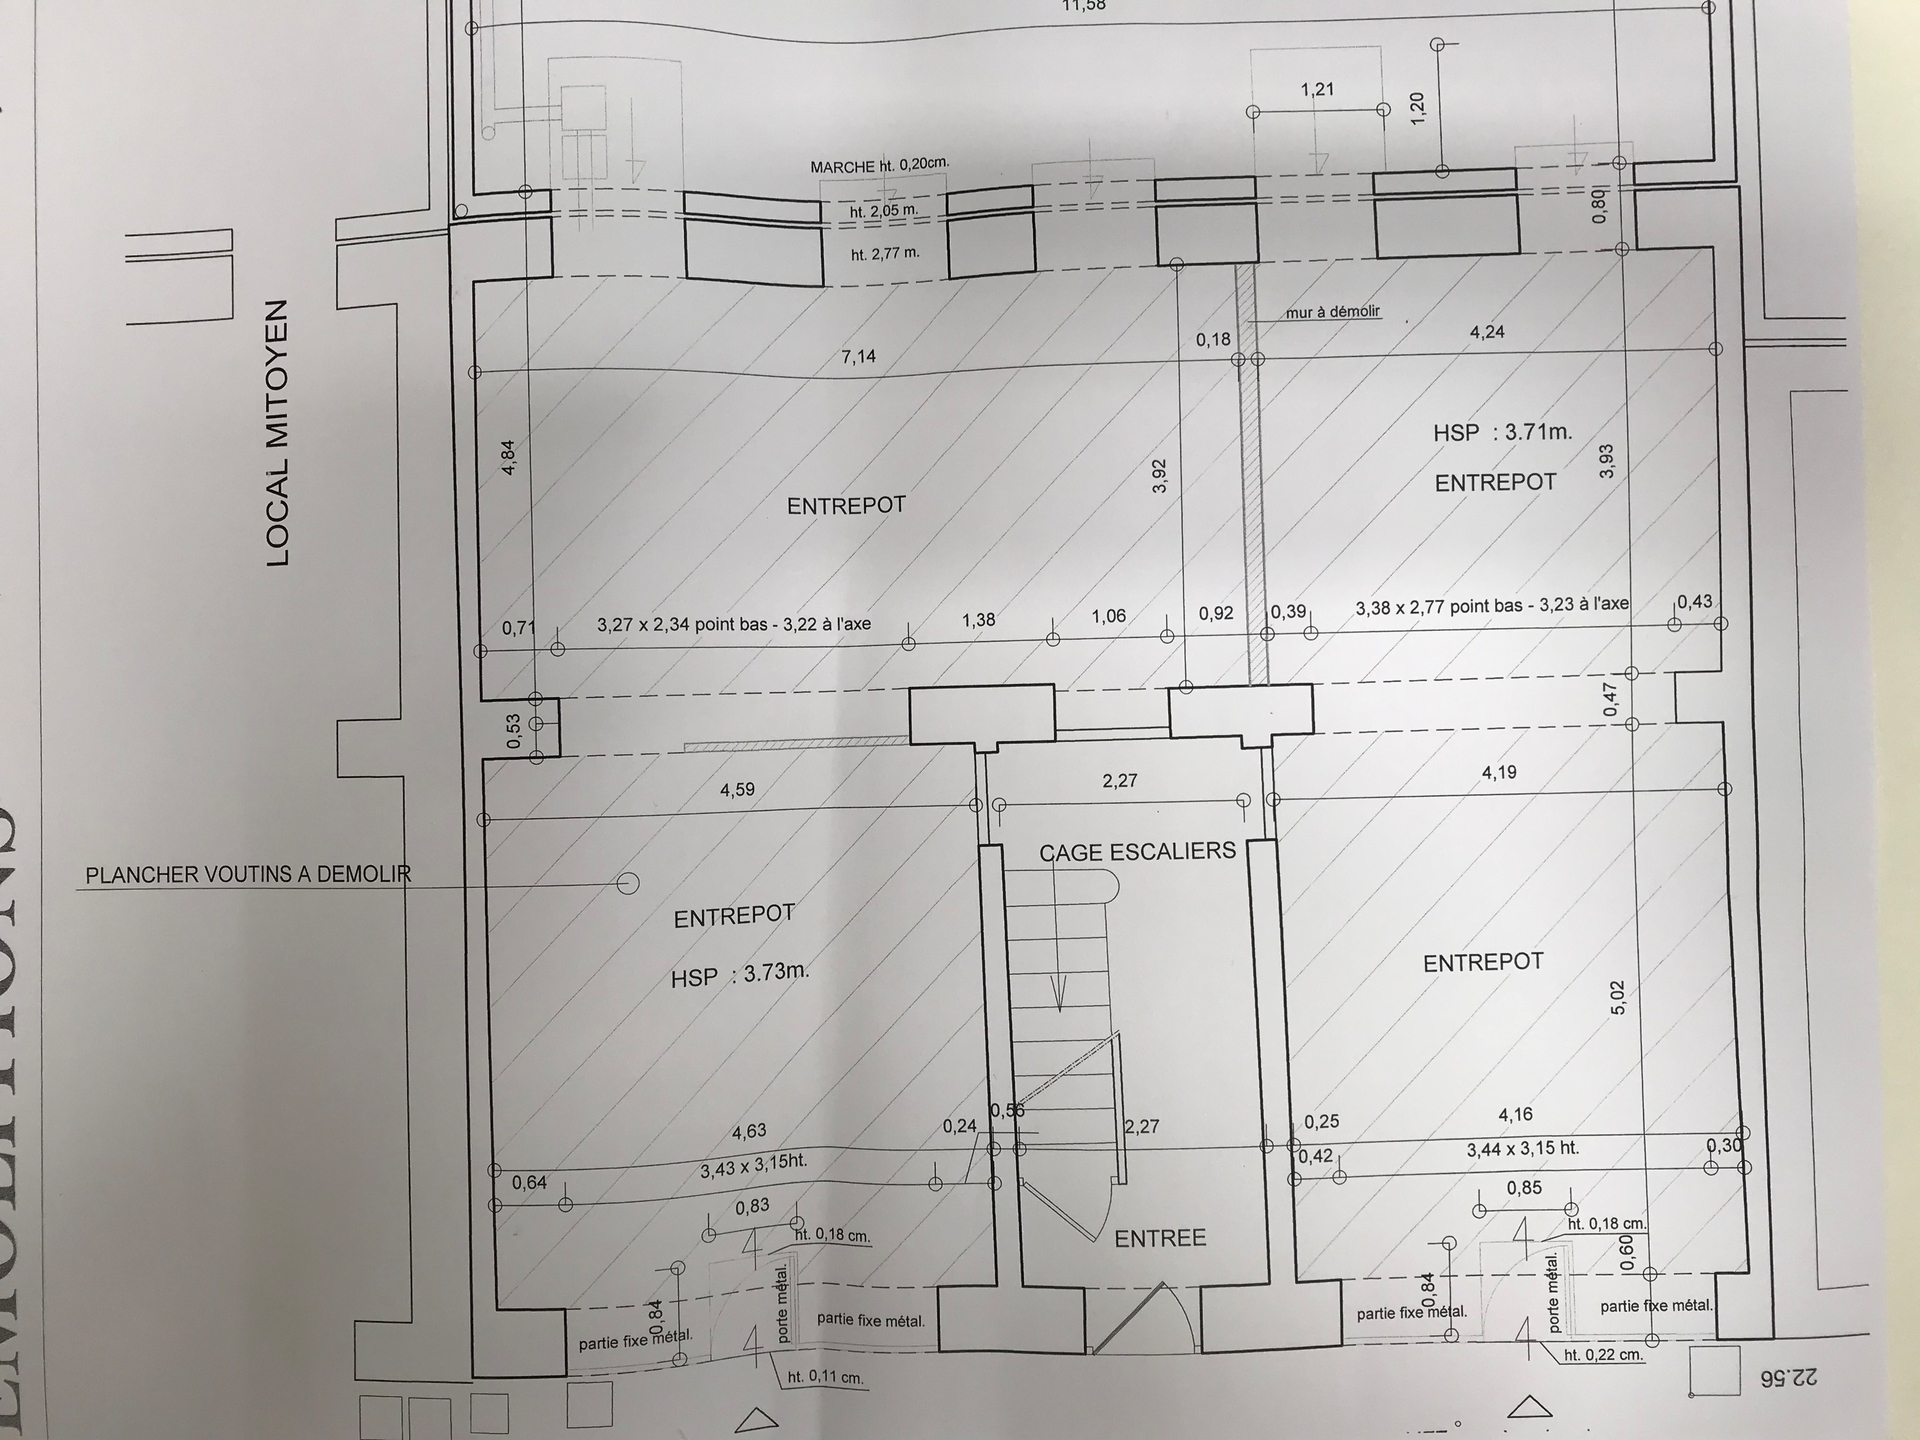 RARE - Commercial space available for sale in a growing area - Commercial leasehold